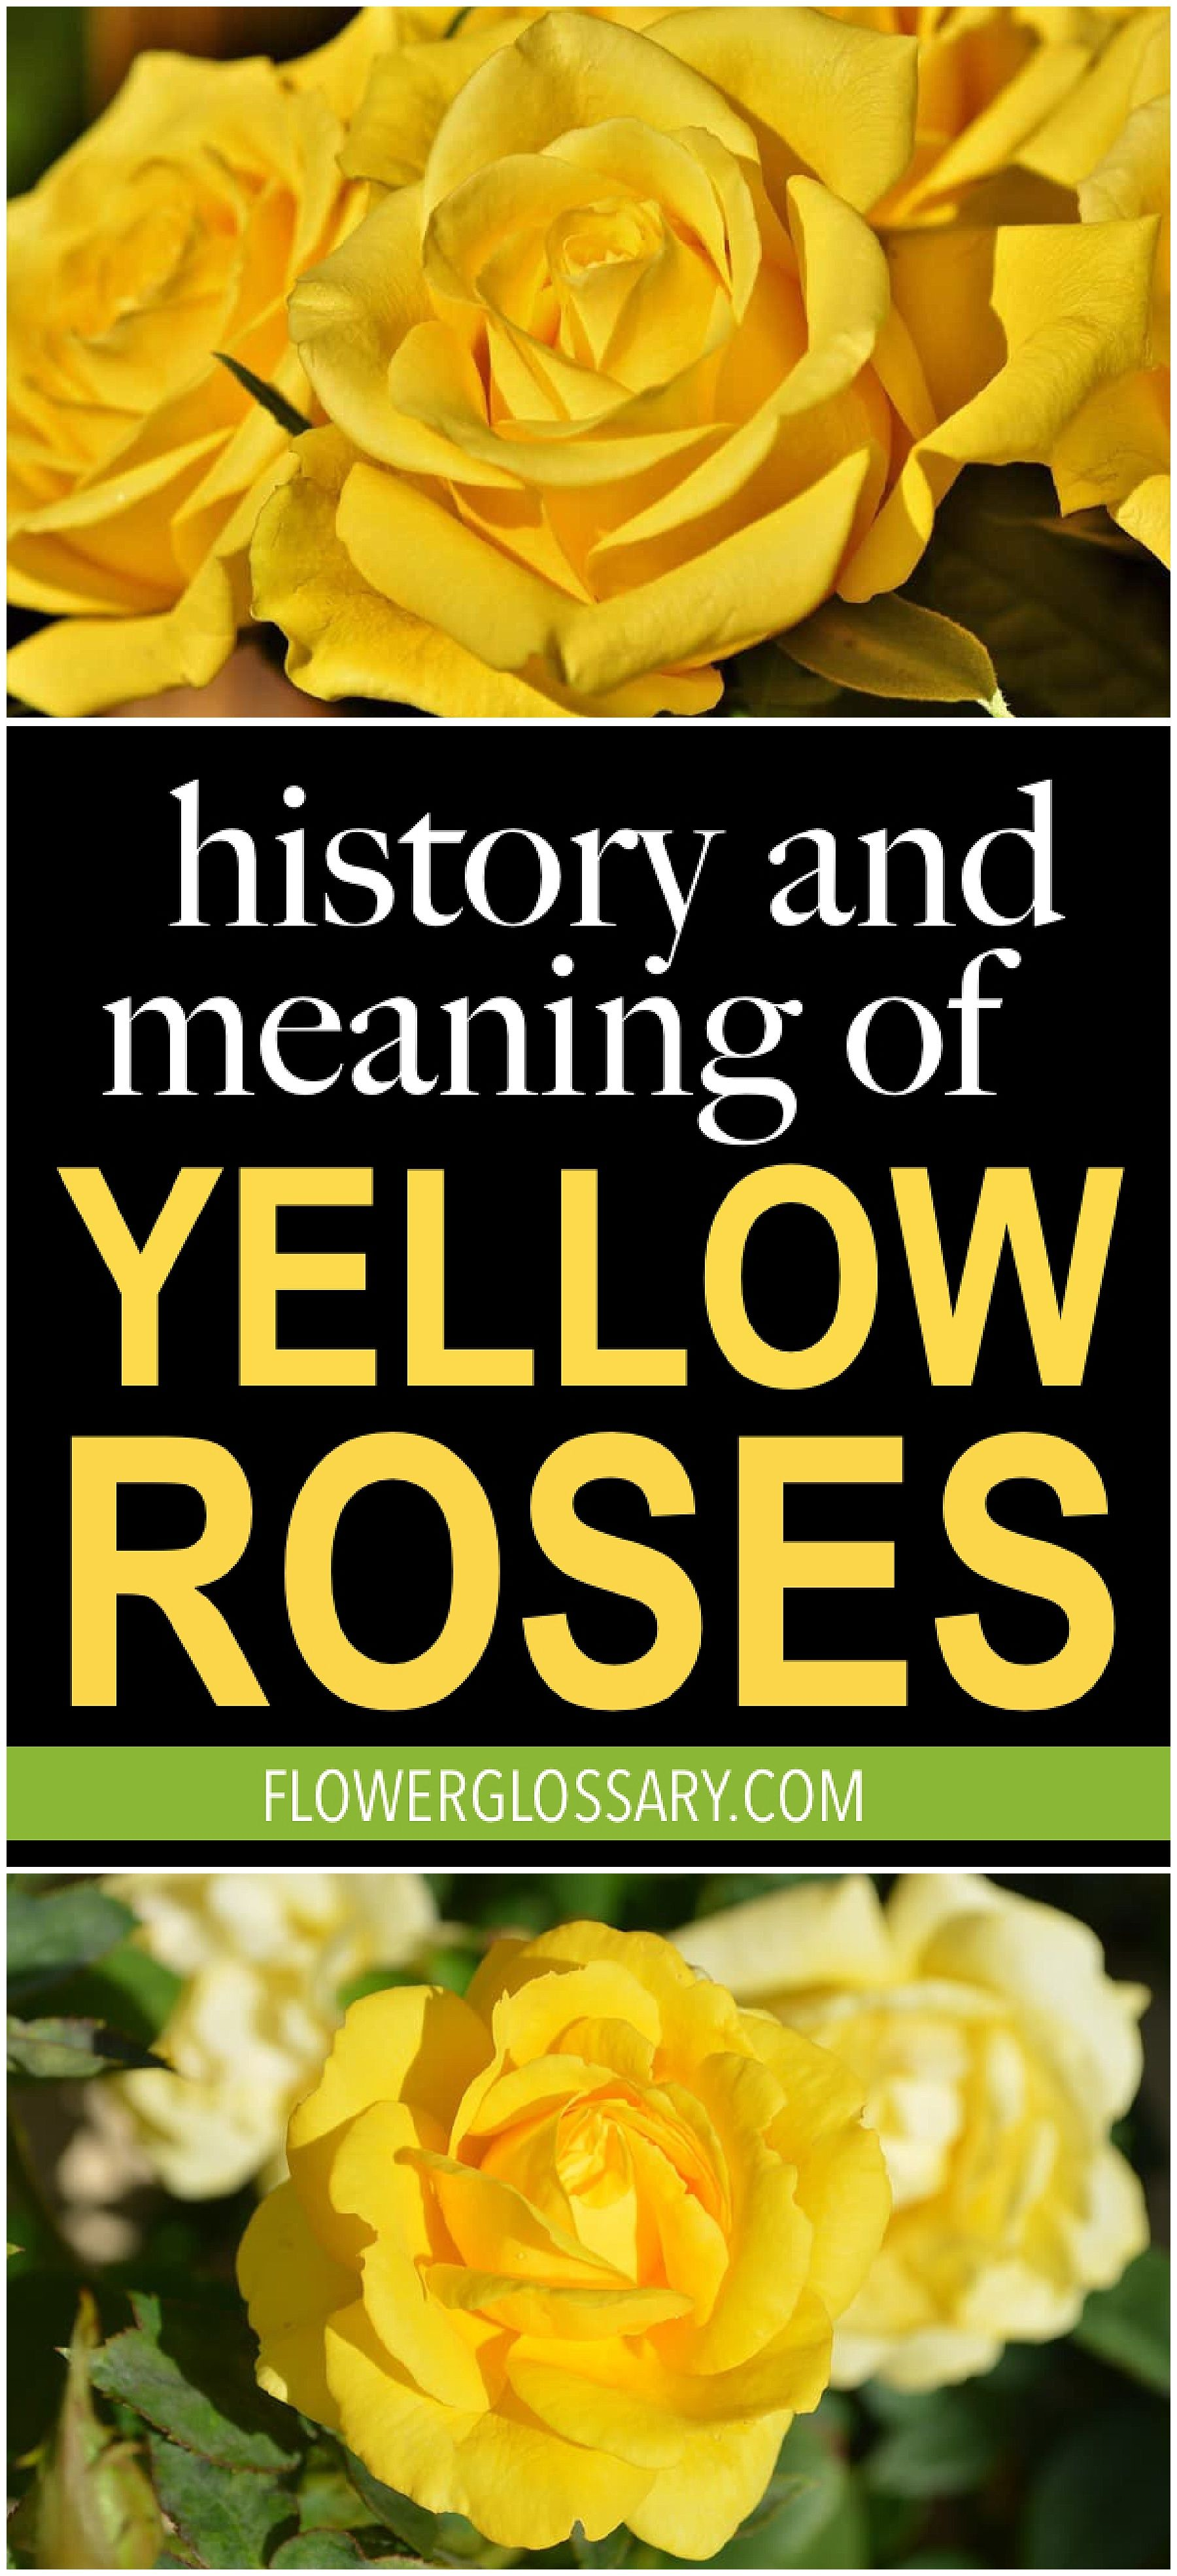 History And Meaning Of Yellow Roses Proflowers Blog Yellow Rose Bouquet Yellow Roses Rose